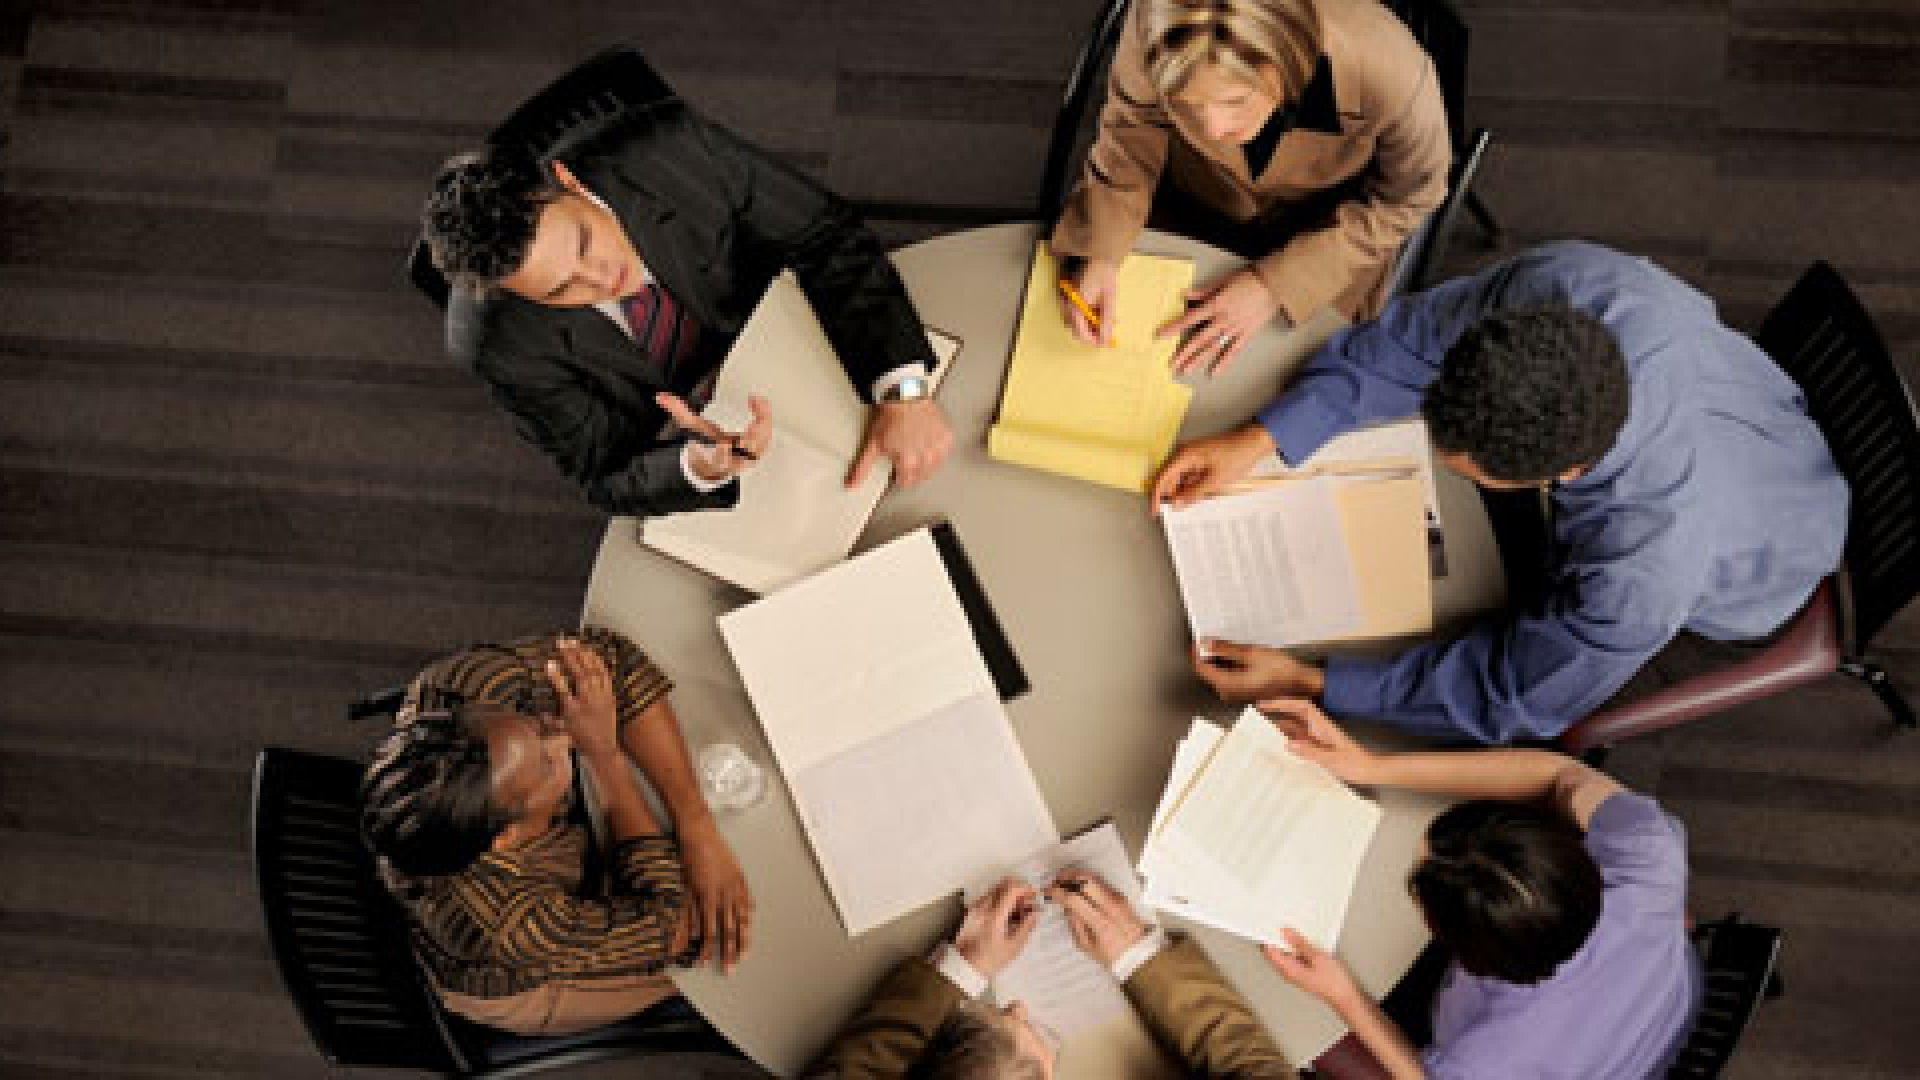 5 Workplace Committees to Form and Their Business Benefits